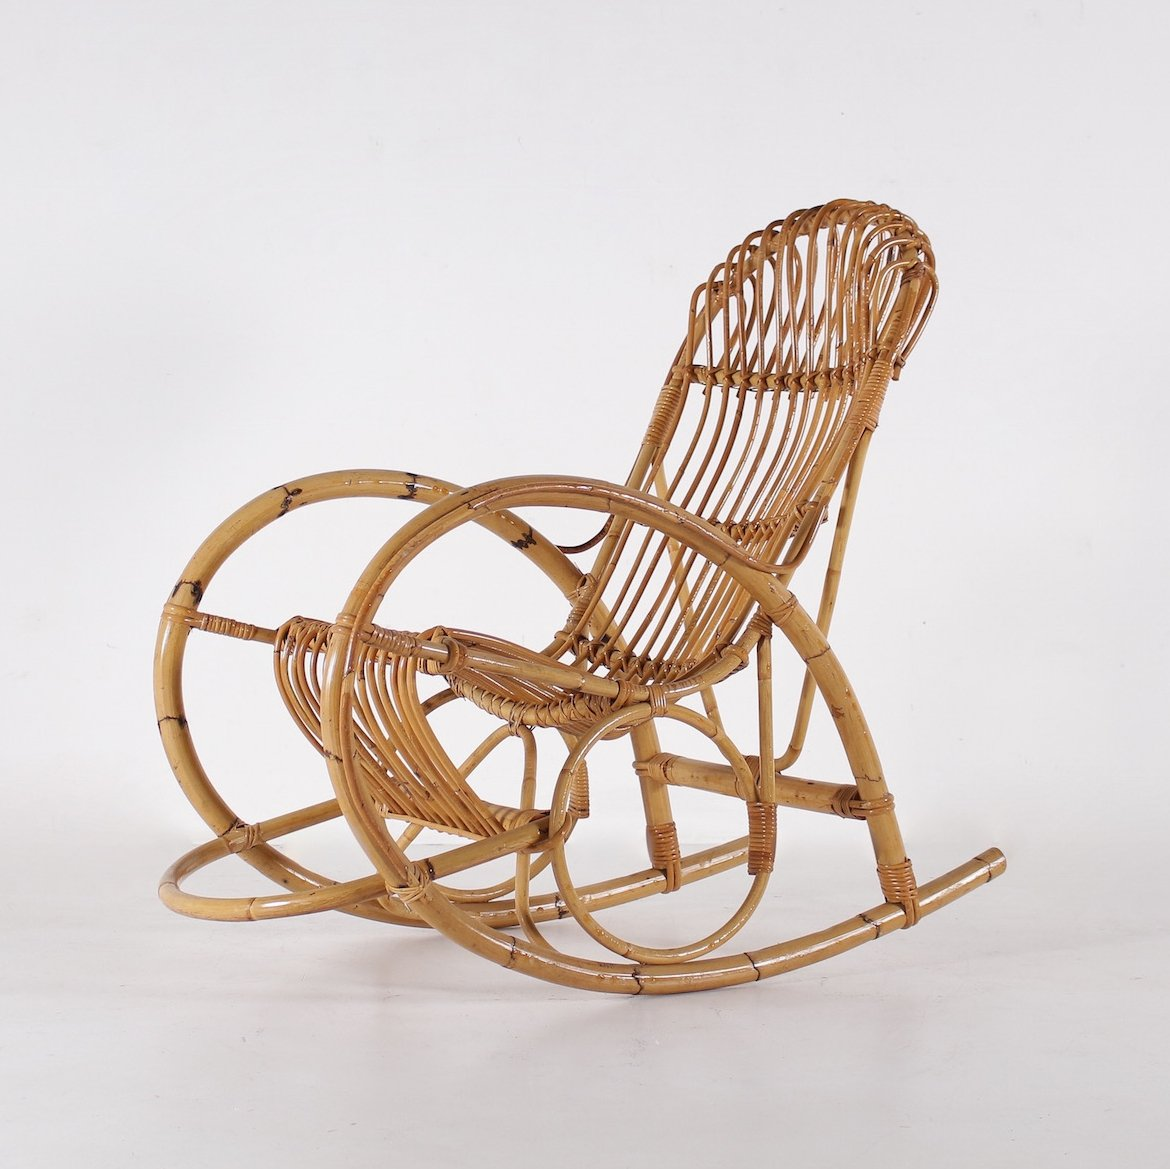 Fabulous Italian Bamboo Rocking Chair 1960S 86256 Gmtry Best Dining Table And Chair Ideas Images Gmtryco